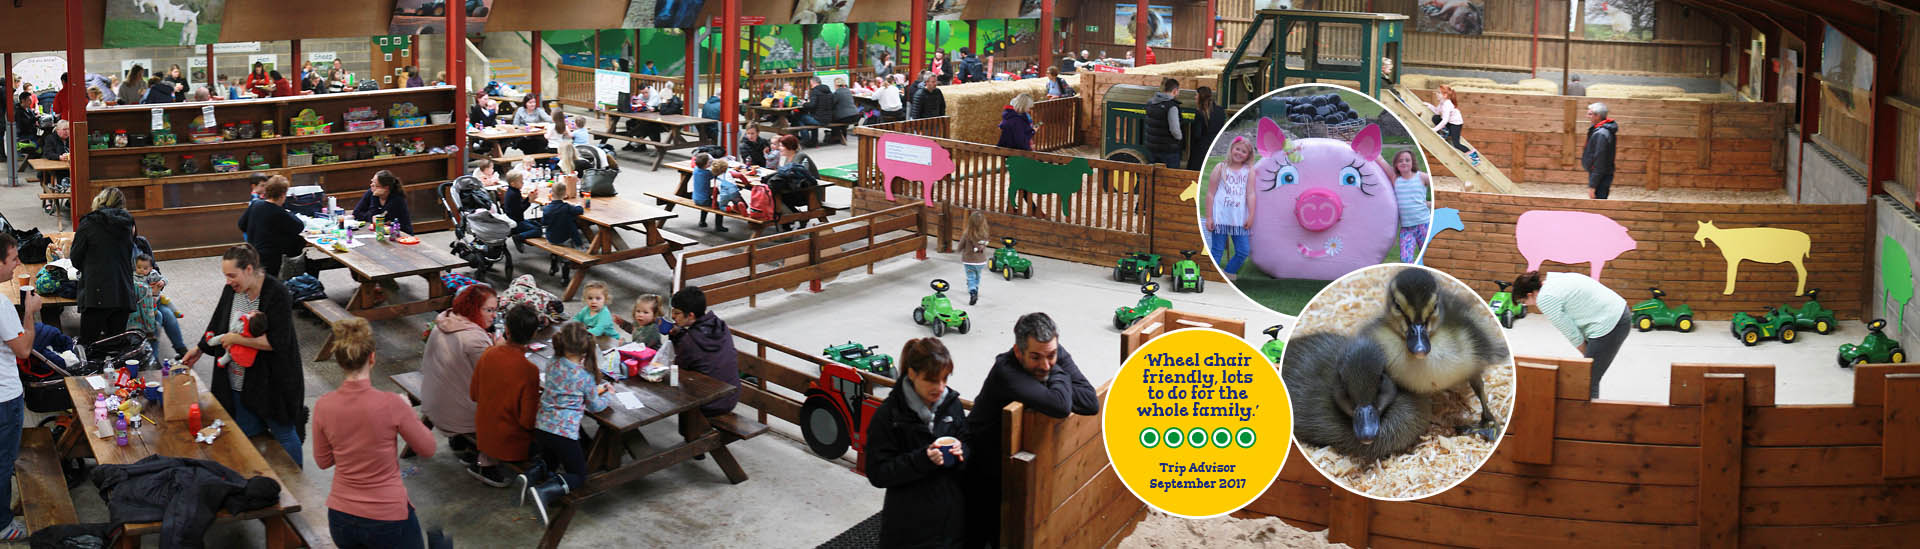 Hesketh Farm Park at Bolton Abbey a fantastic Family day out for